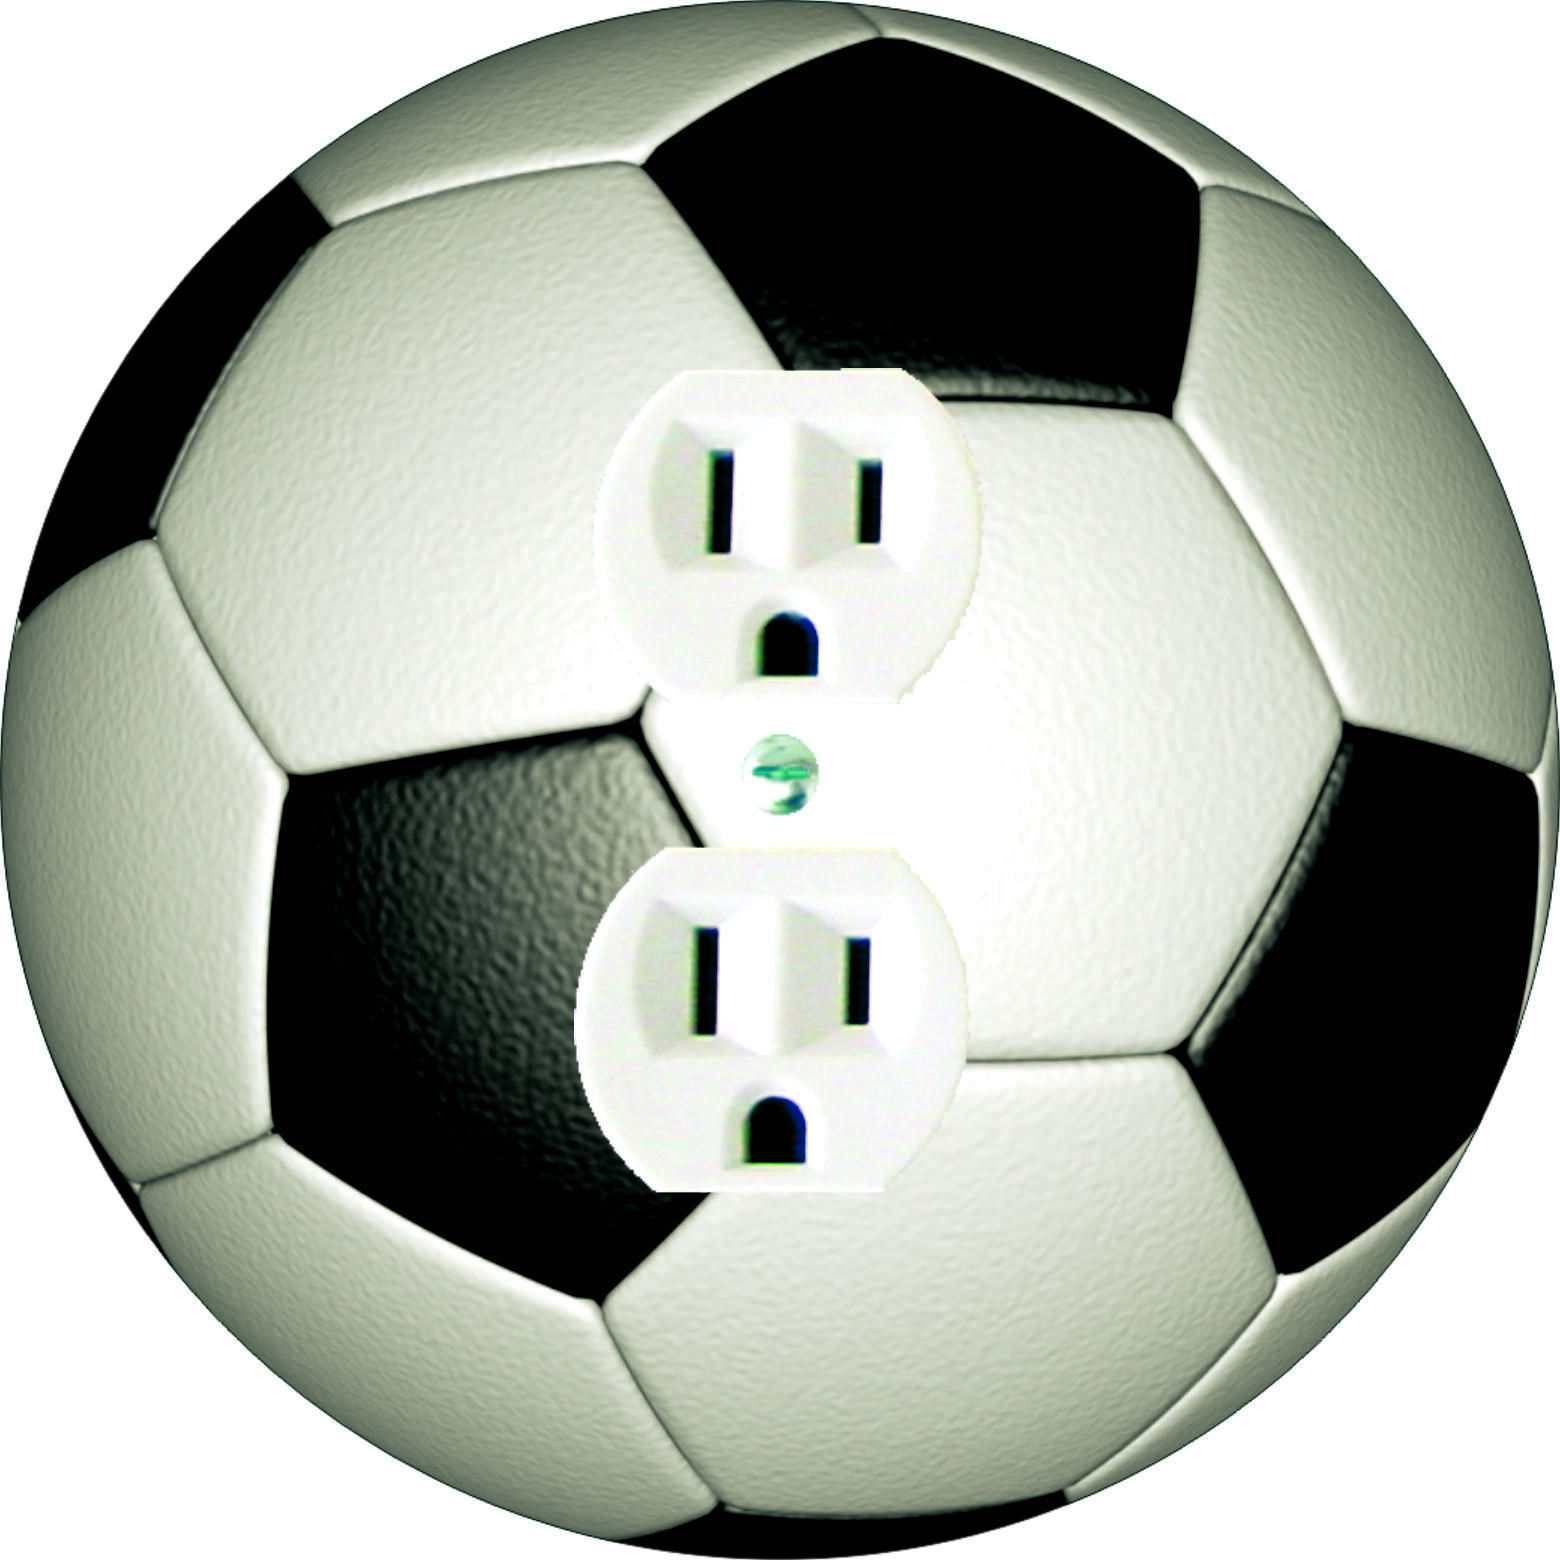 Details About Coloriffic Soccer Ball Light Switch Outlet Decora Rocker Wall Plate Fussball Plates On Wall Soccer Soccer Furniture